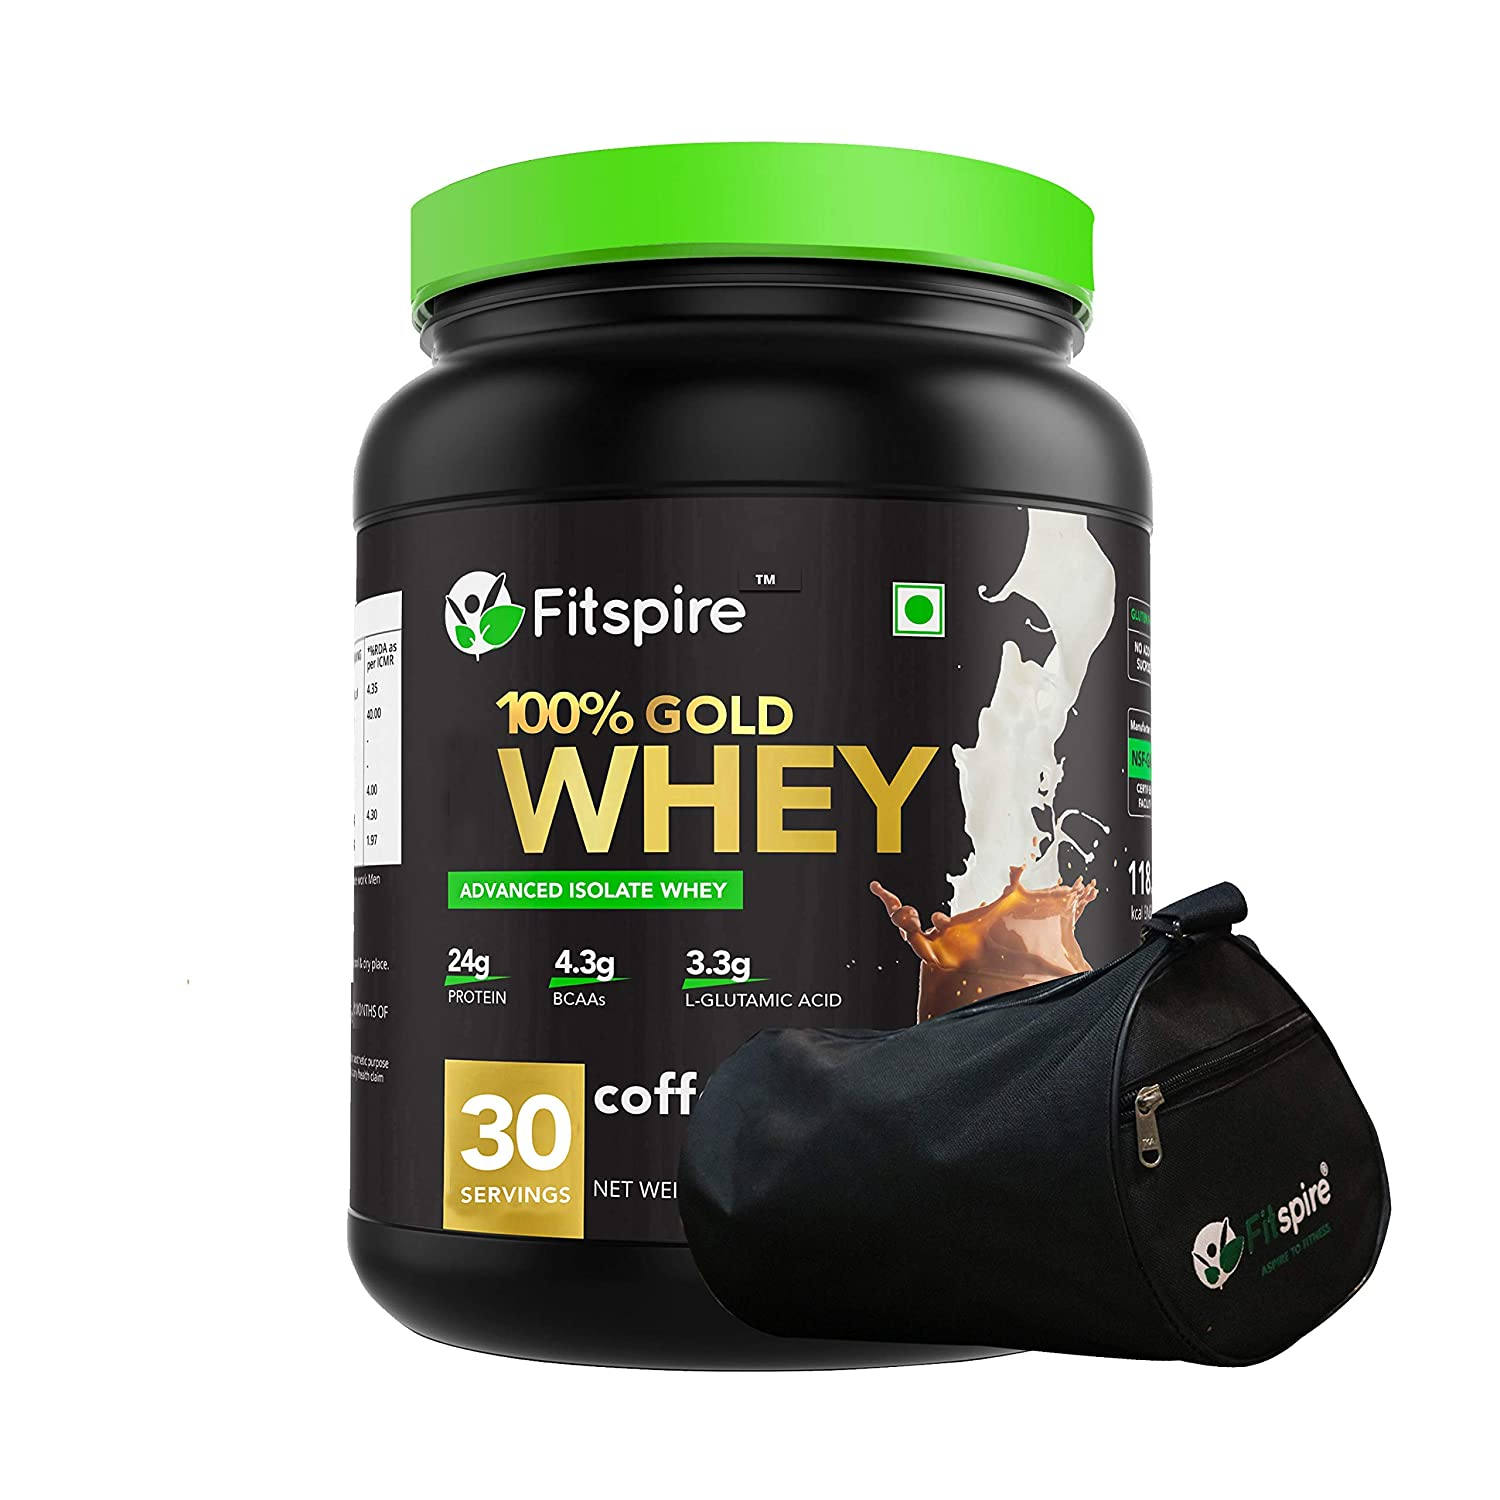 Whey Protein with Gym Bag | No Added Sugar, Low Carbs, Zero Cholesterol & Gluten Free | 1kg